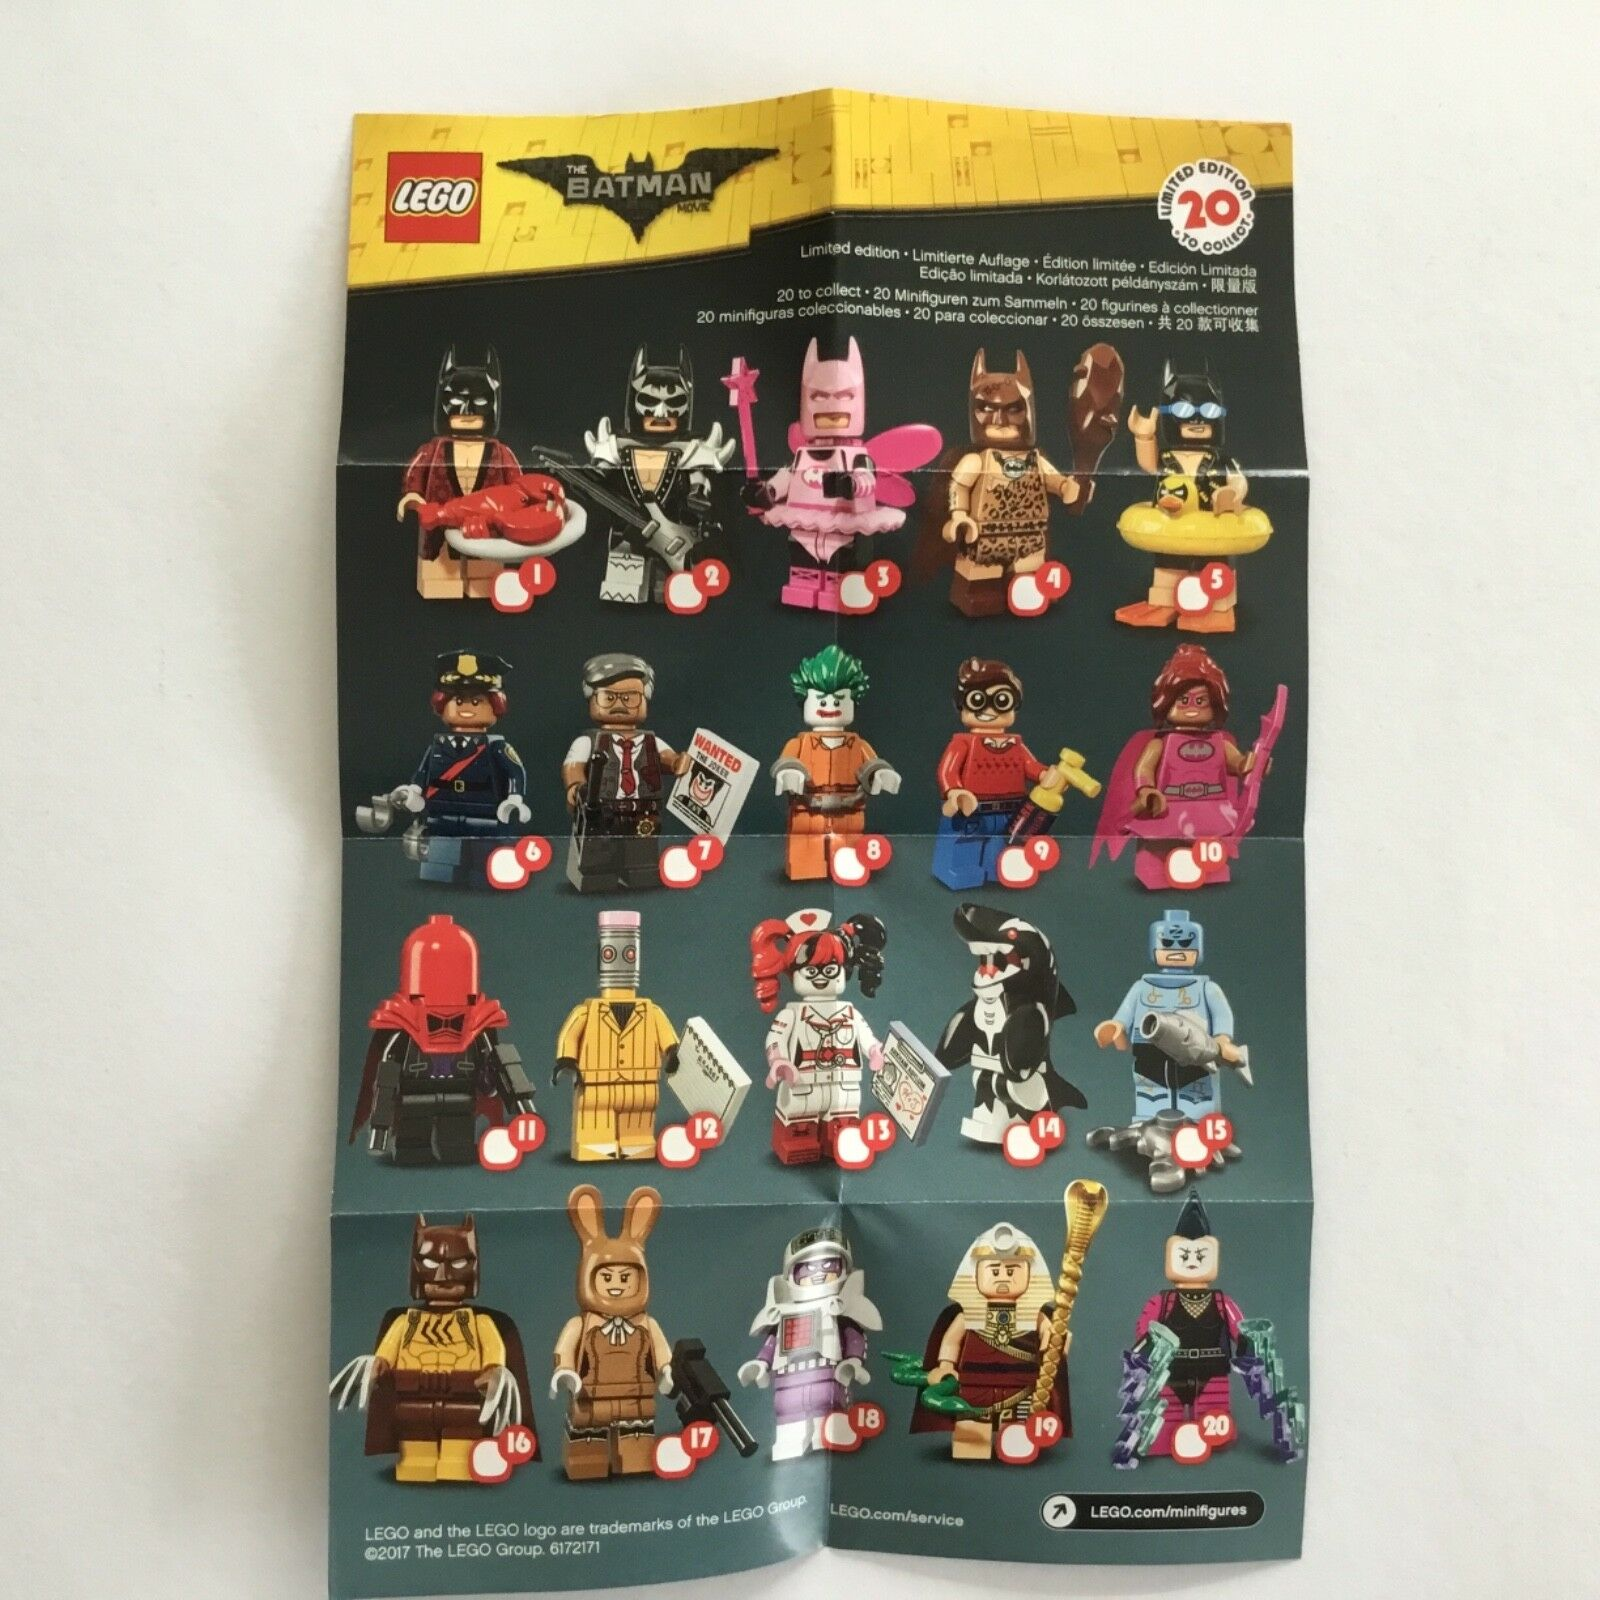 LEGO sammelfiguren 71017 Batman MOVIE-Completo 20 PERSONAGGI NUOVO